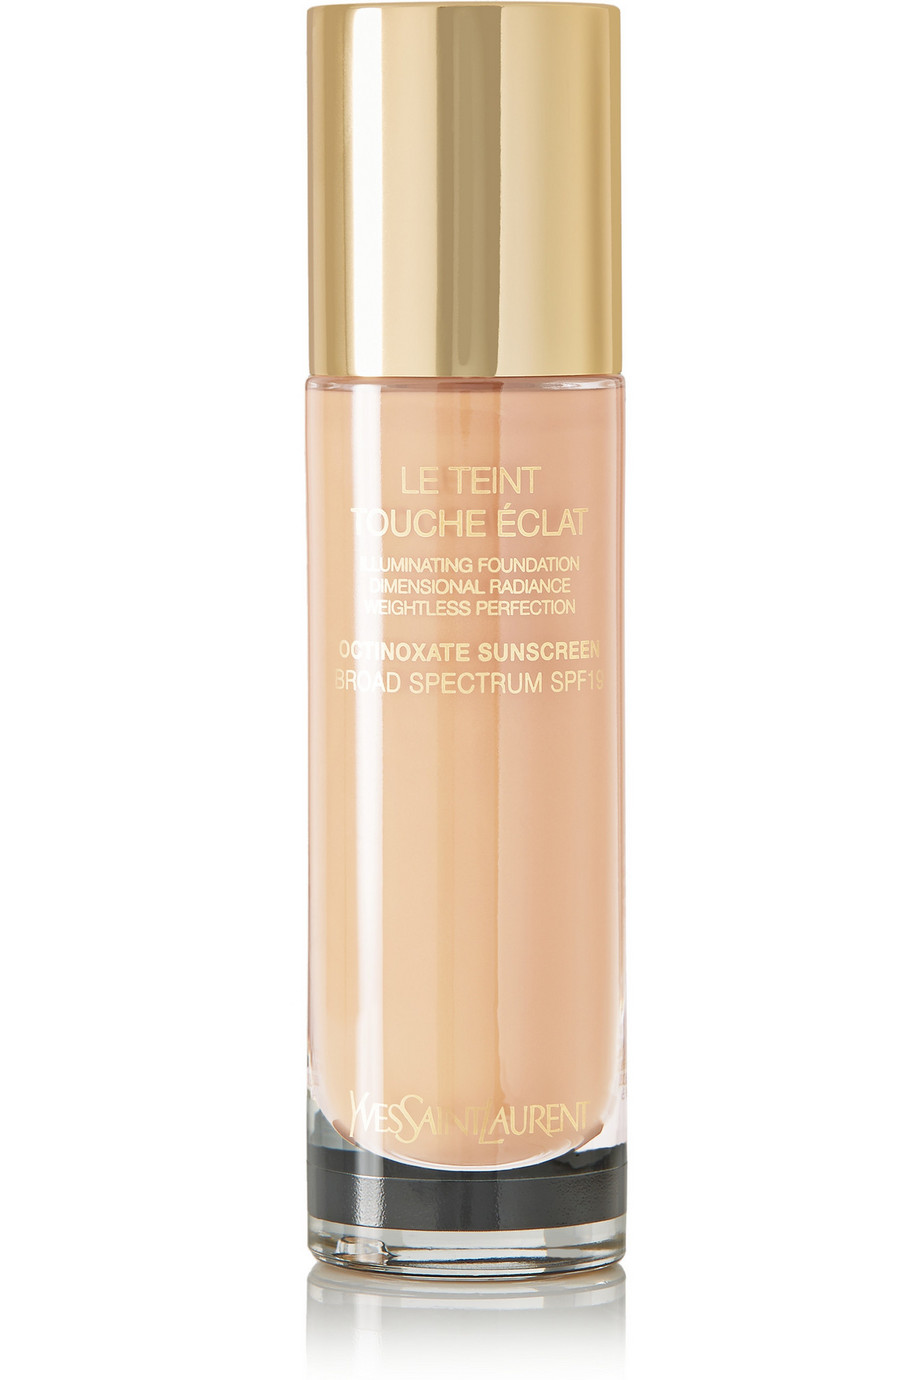 Le Teint Touche Éclat Illuminating Foundation - Beige Rose 10, 30ml, by Yves Saint Laurent Beauty